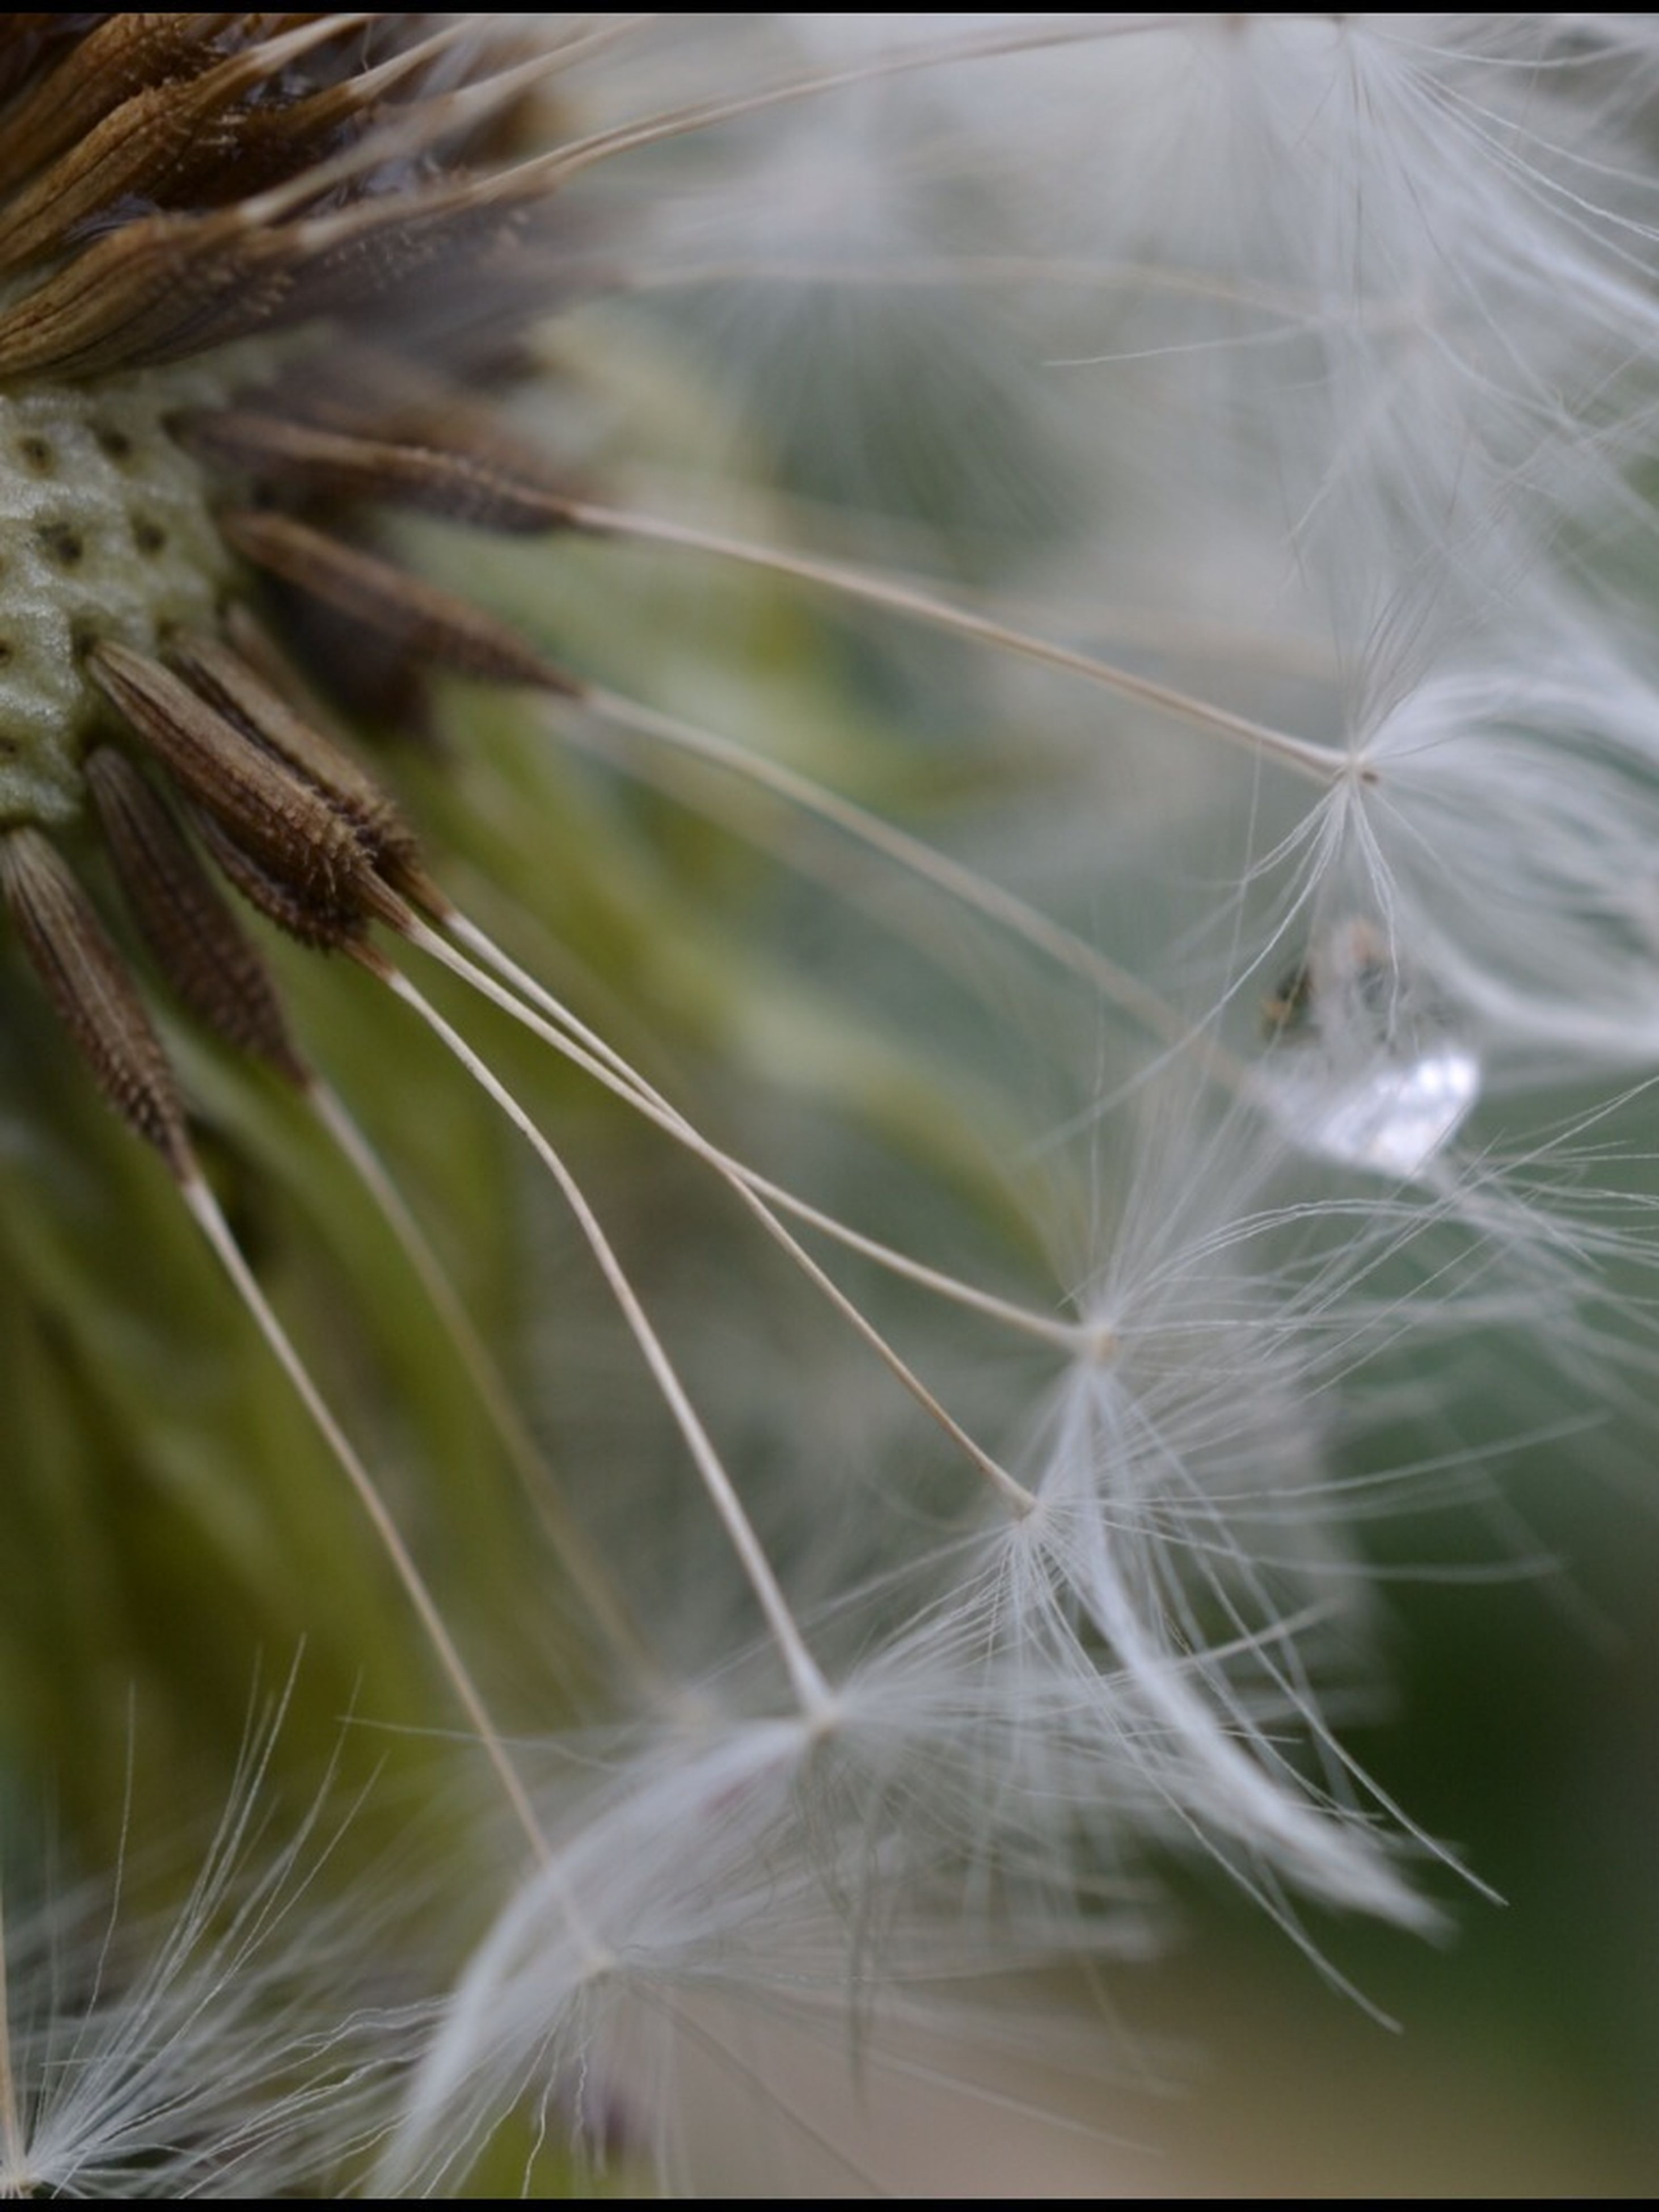 dandelion, flower, fragility, growth, close-up, freshness, nature, beauty in nature, flower head, focus on foreground, softness, plant, day, outdoors, no people, dandelion seed, single flower, selective focus, stem, uncultivated